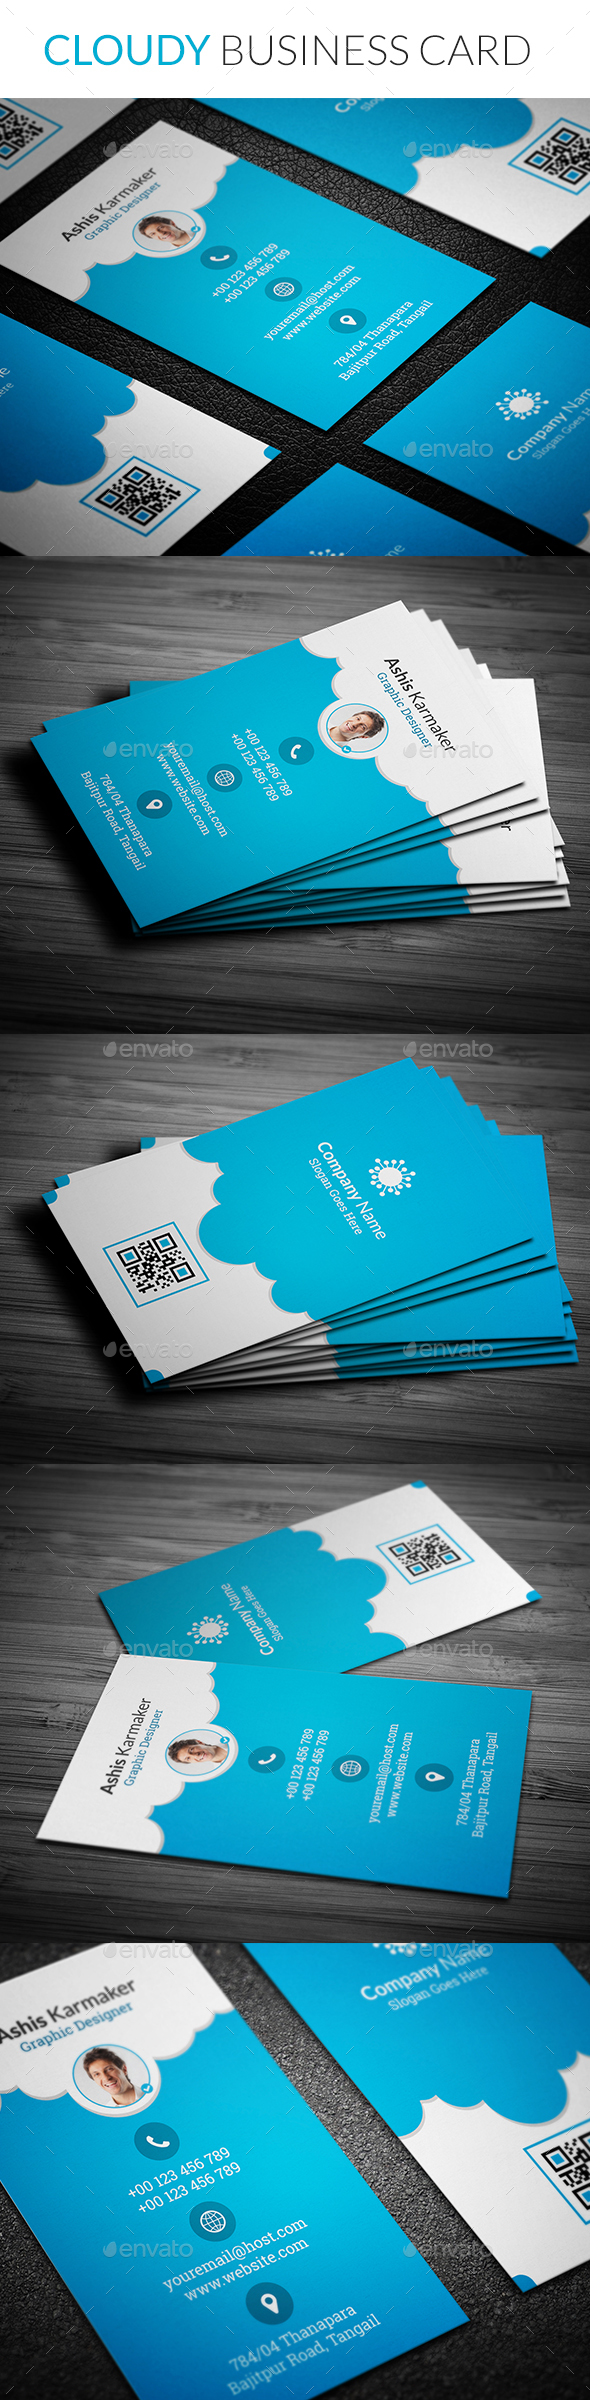 Cloudy Business Card - Business Cards Print Templates